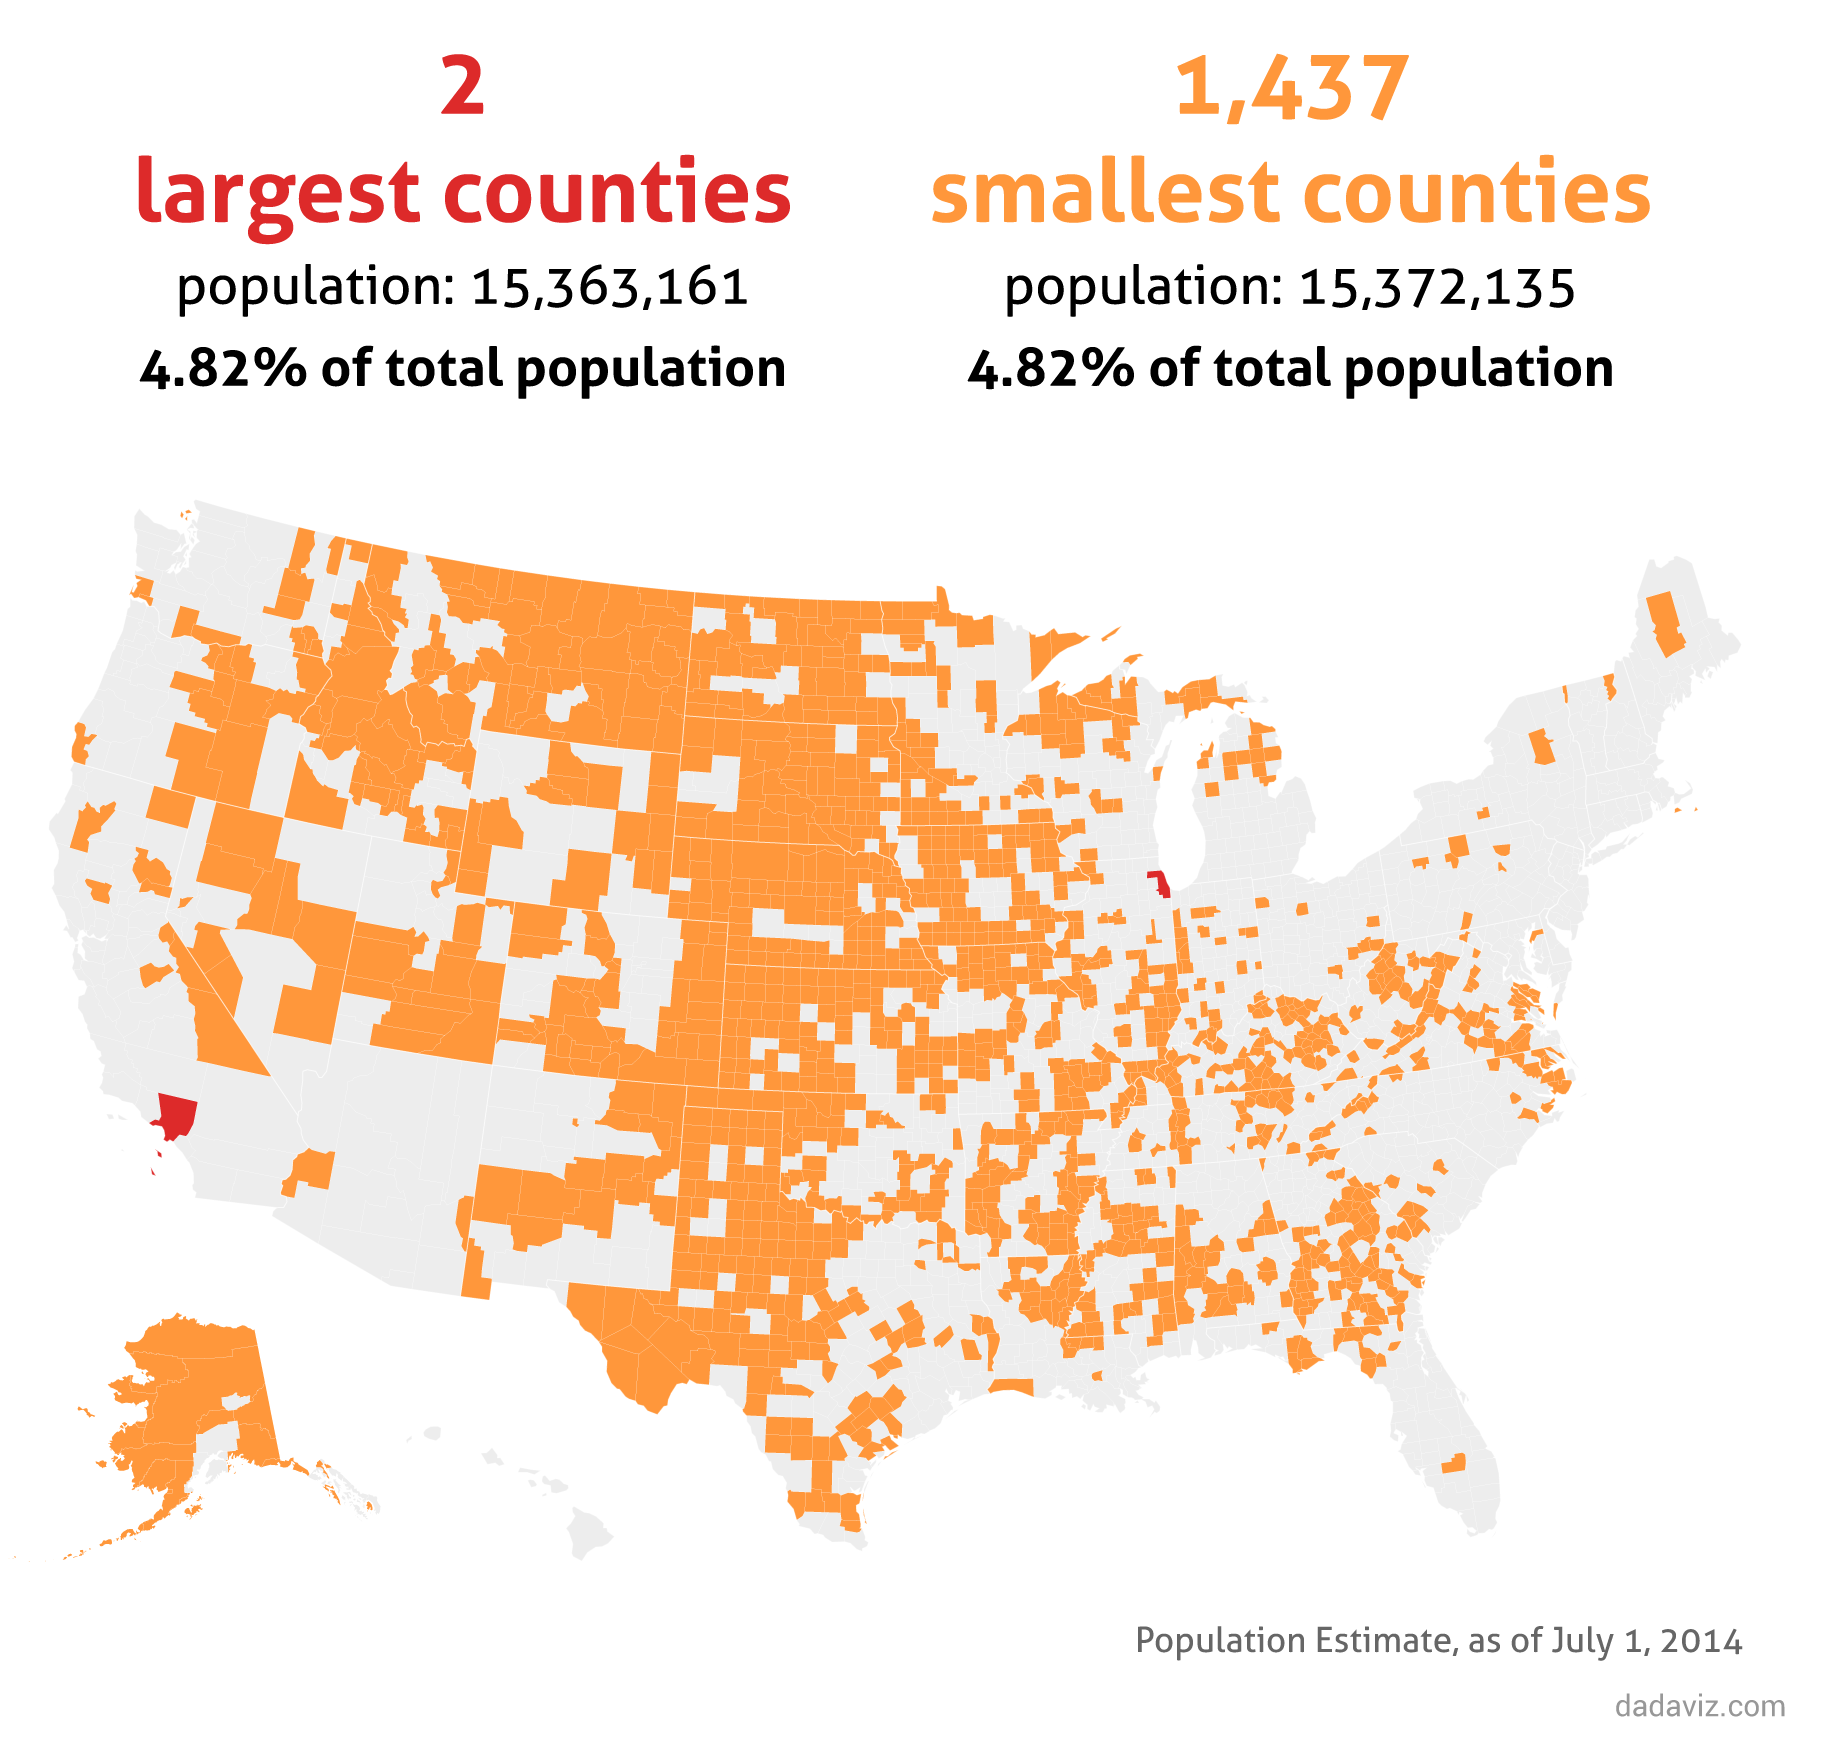 The 144 largest counties account for 50% of total population